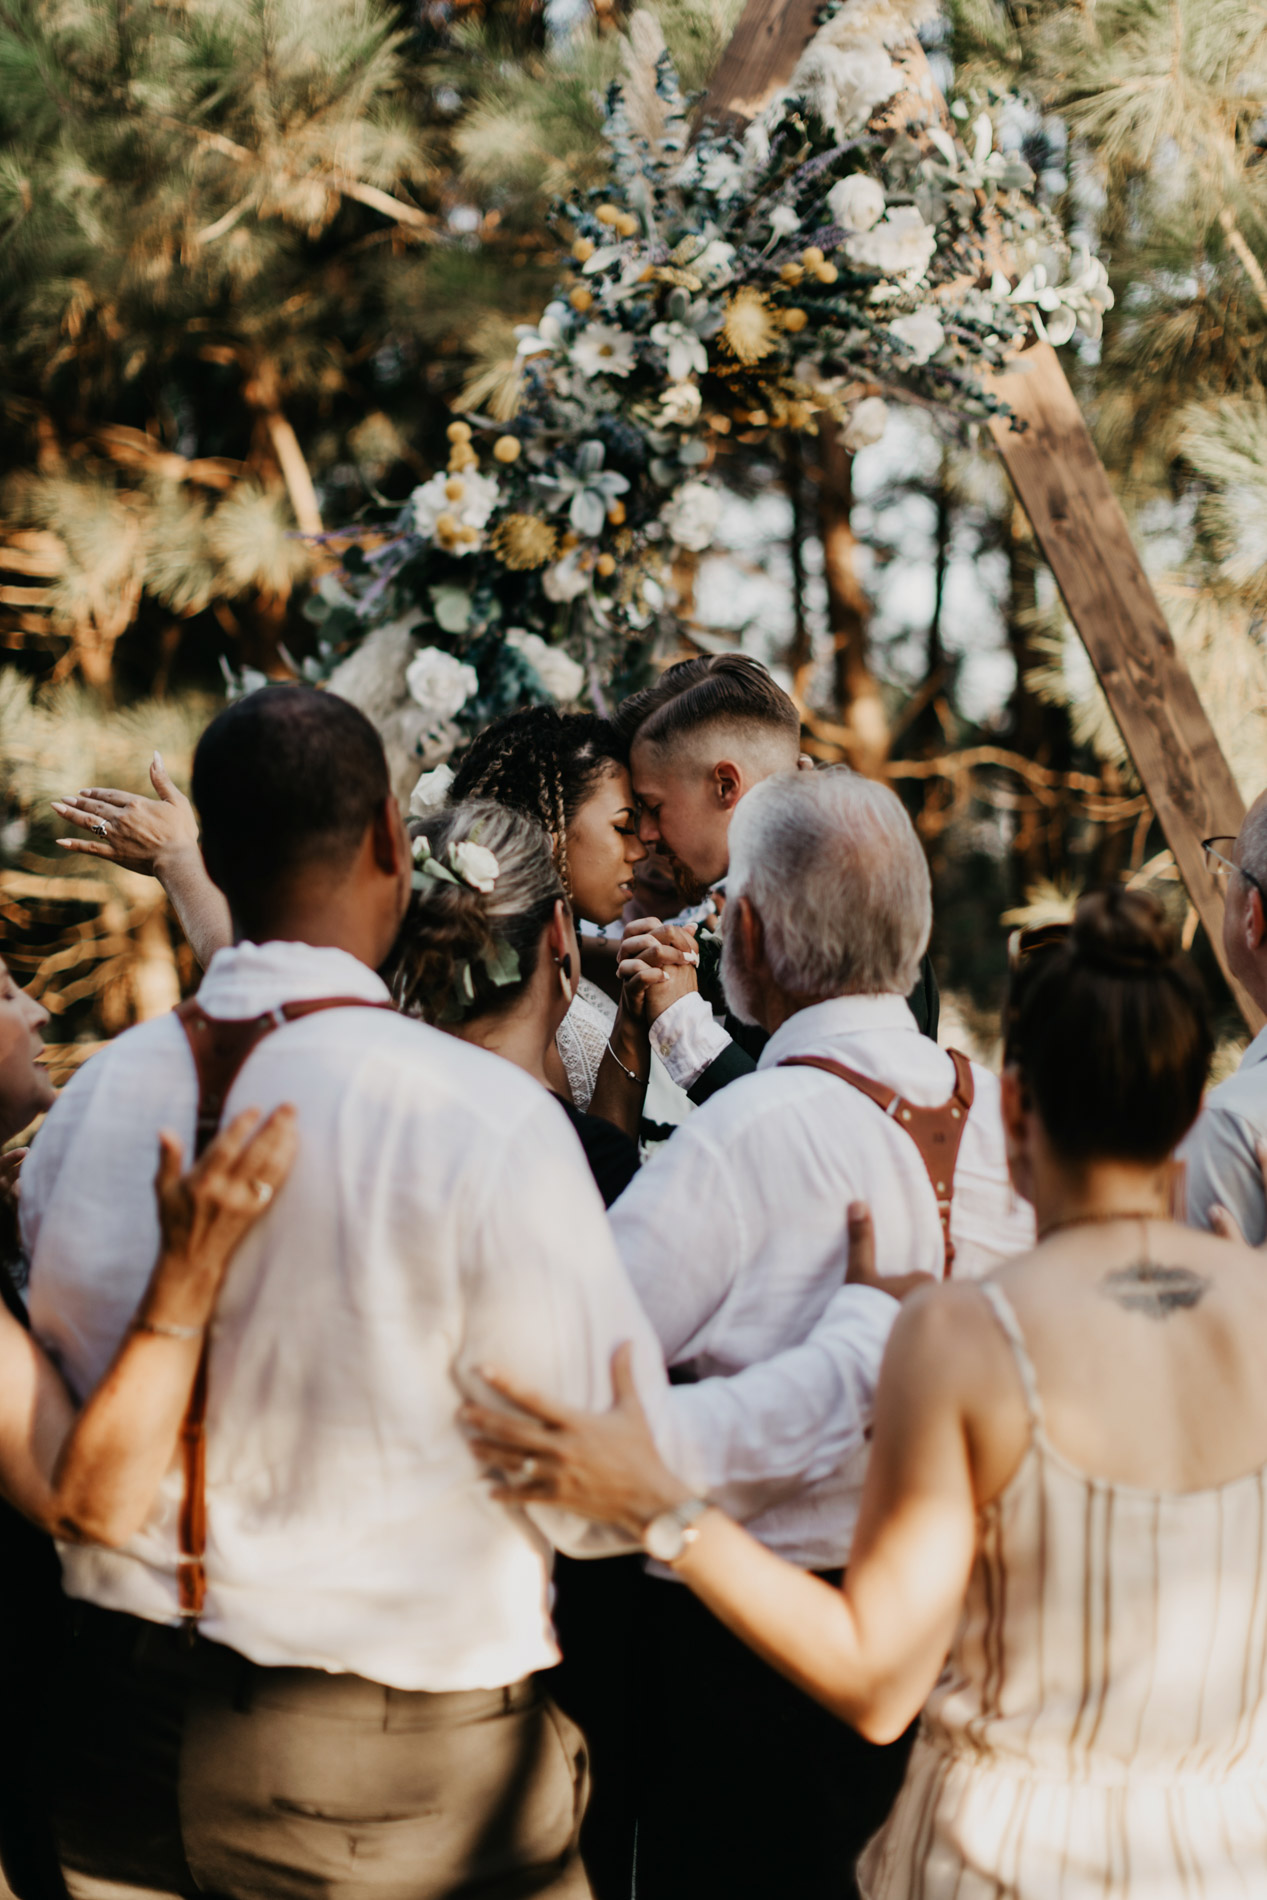 Bride and grooms family praying over them on wedding day